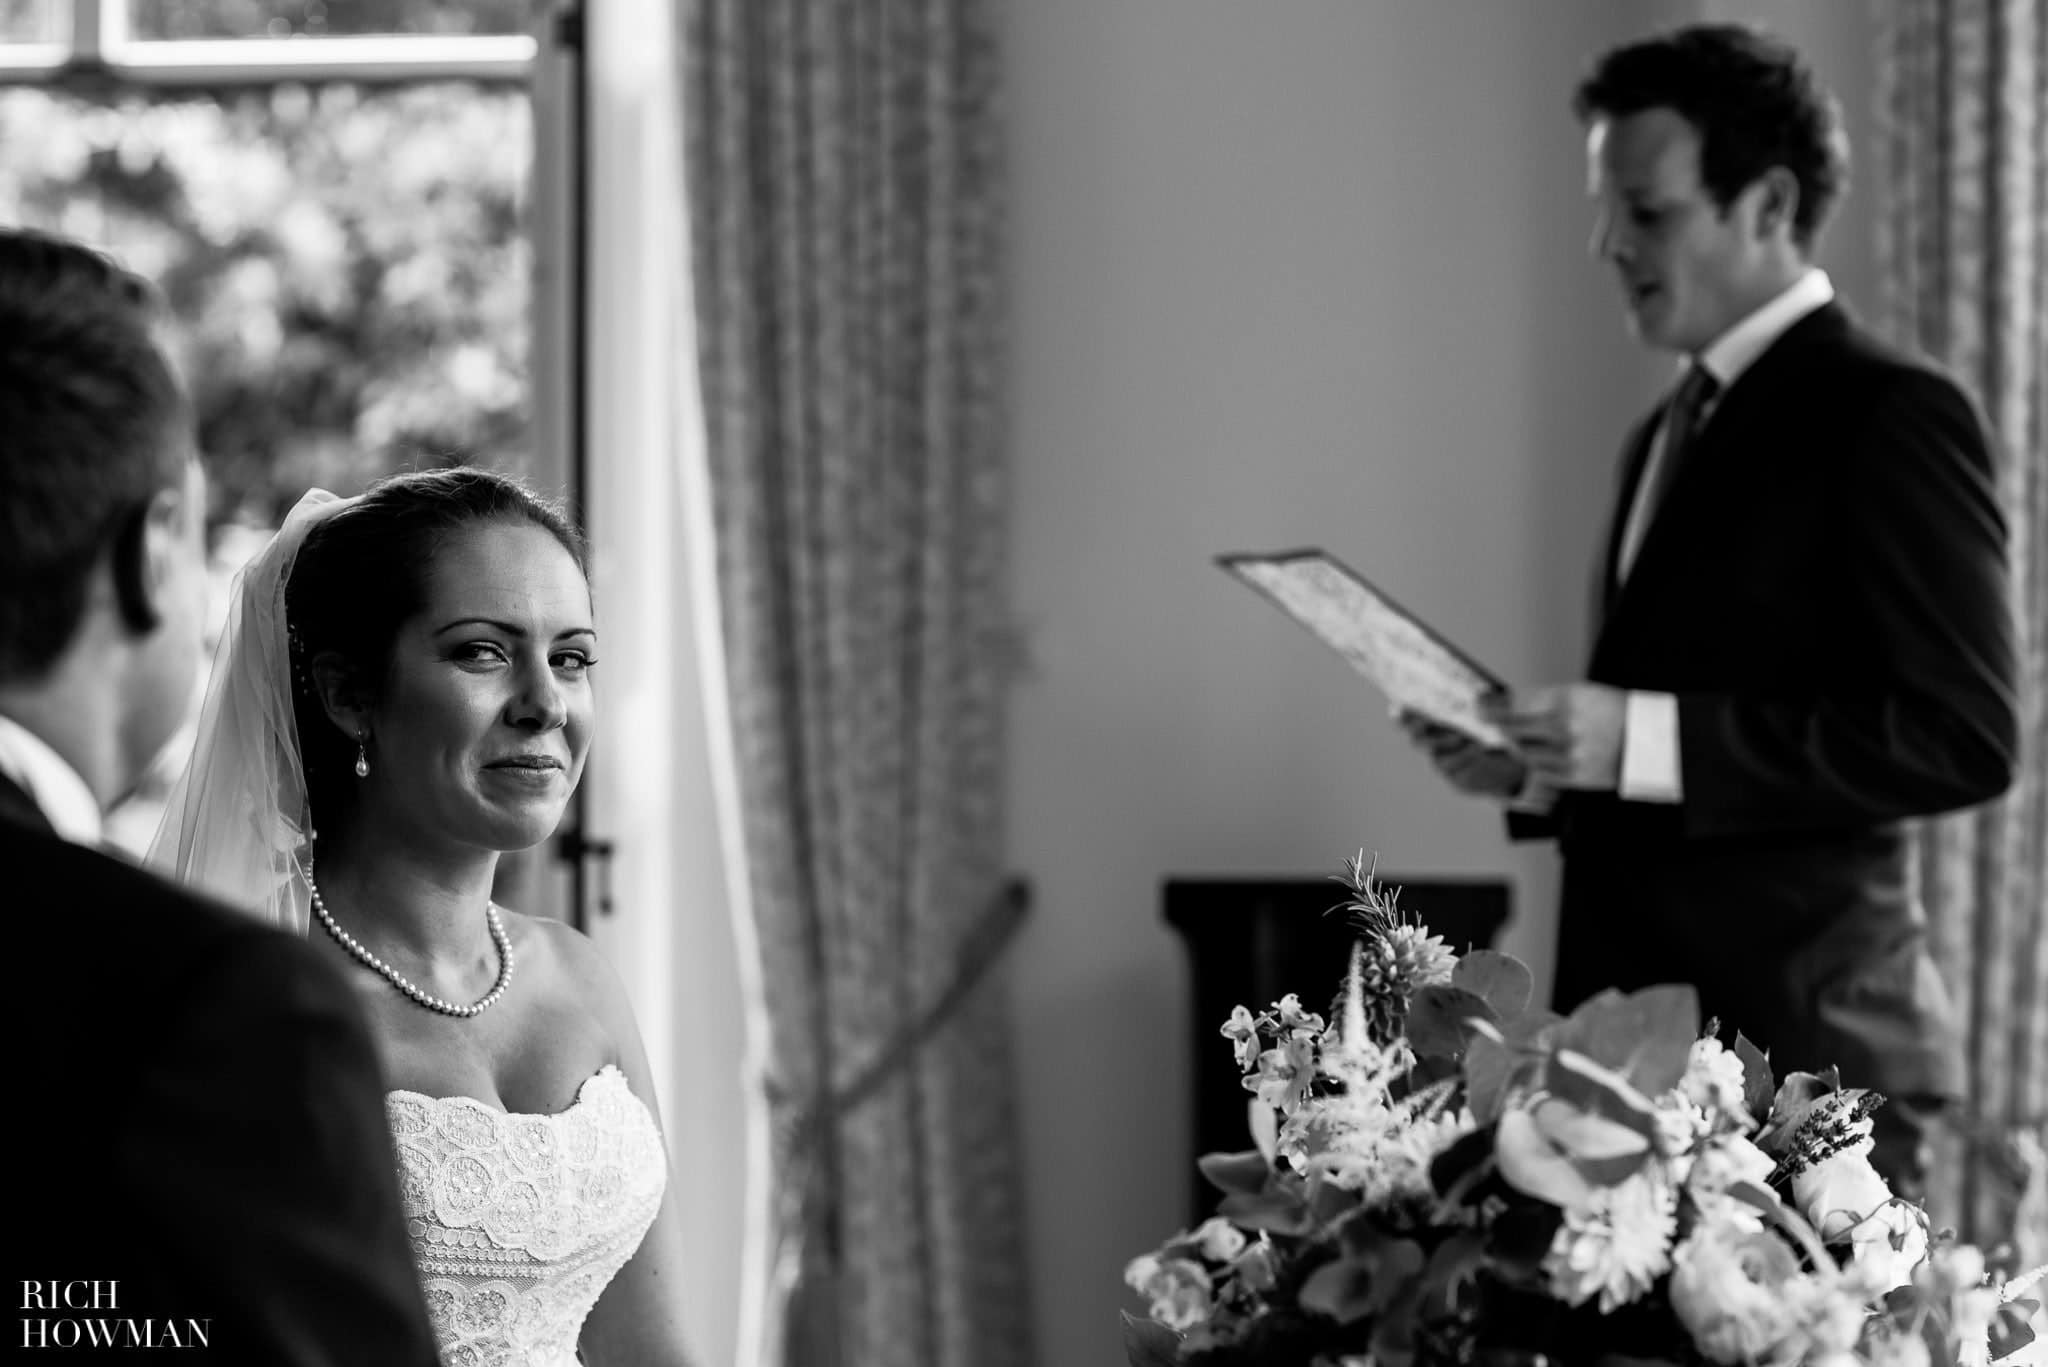 Bride glances at her new husband - documentary wedding photography